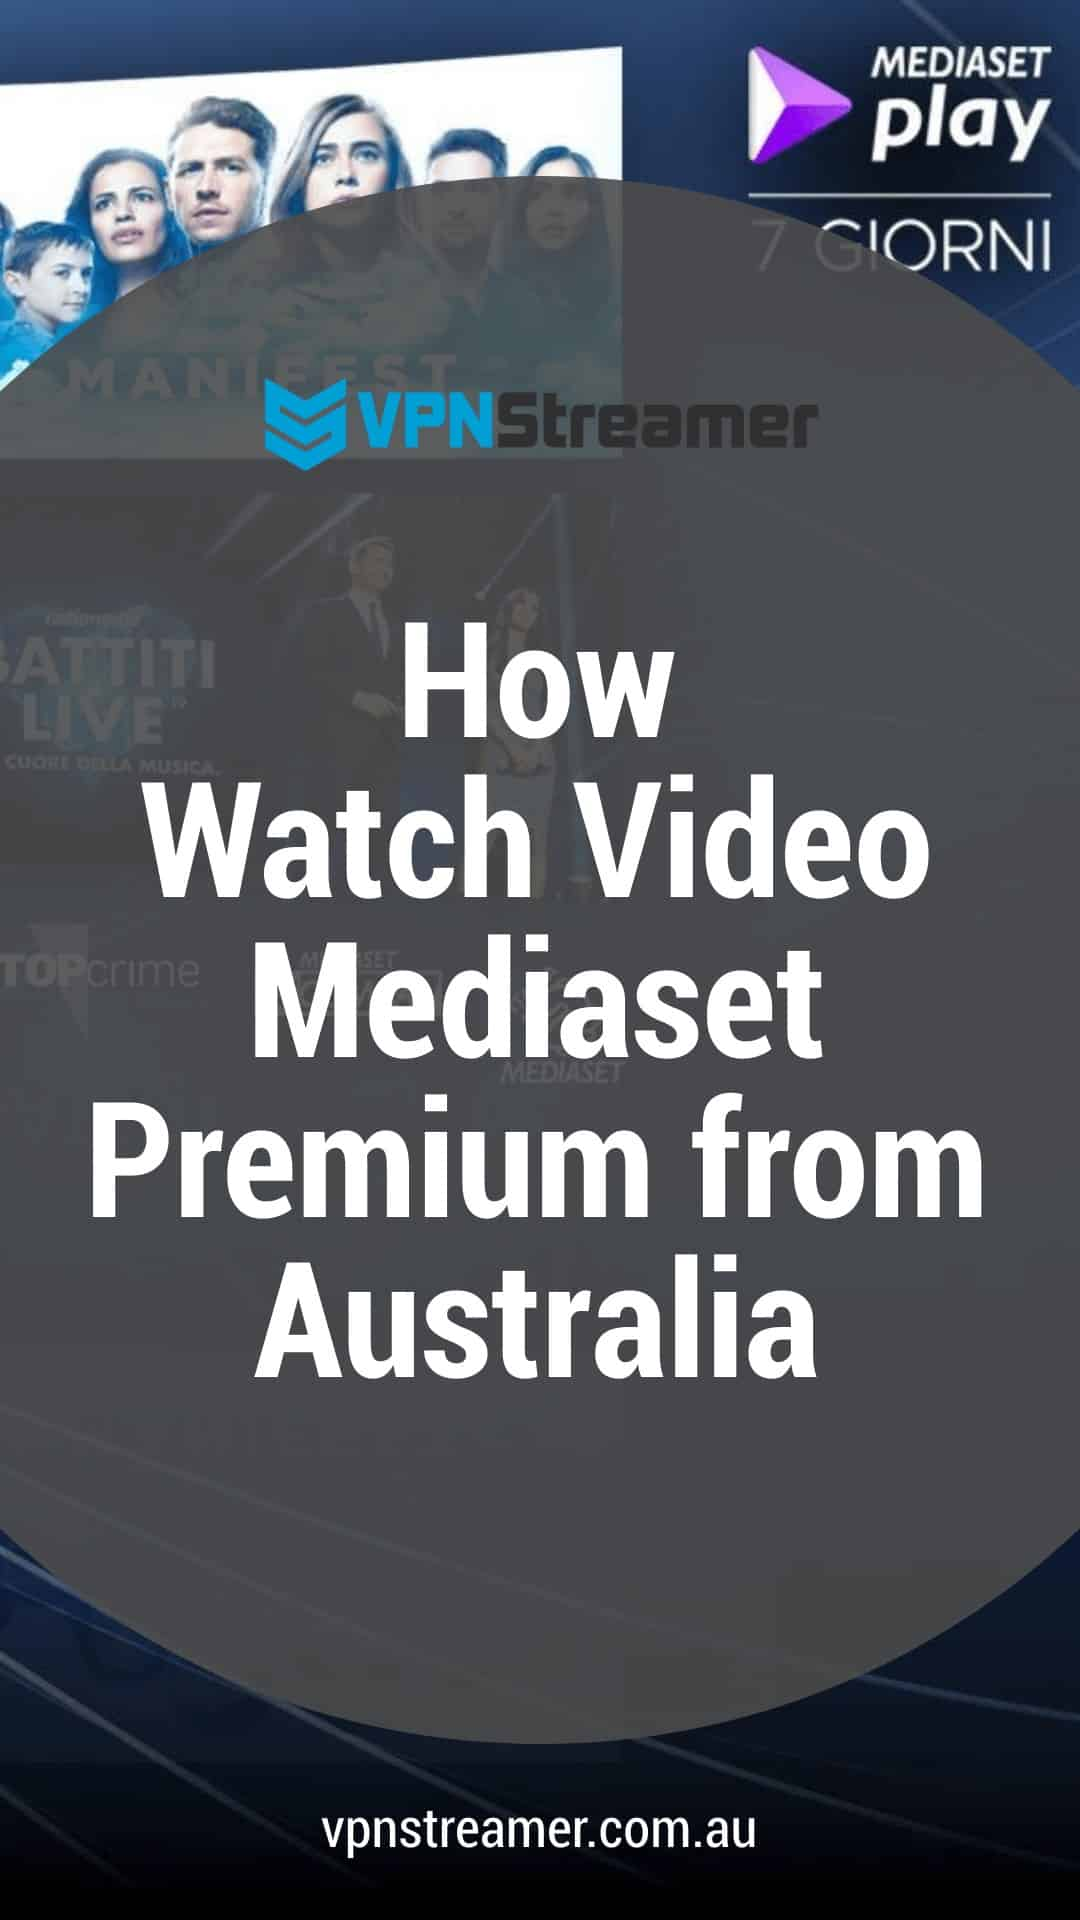 How Watch Video Mediaset Premium from Australia